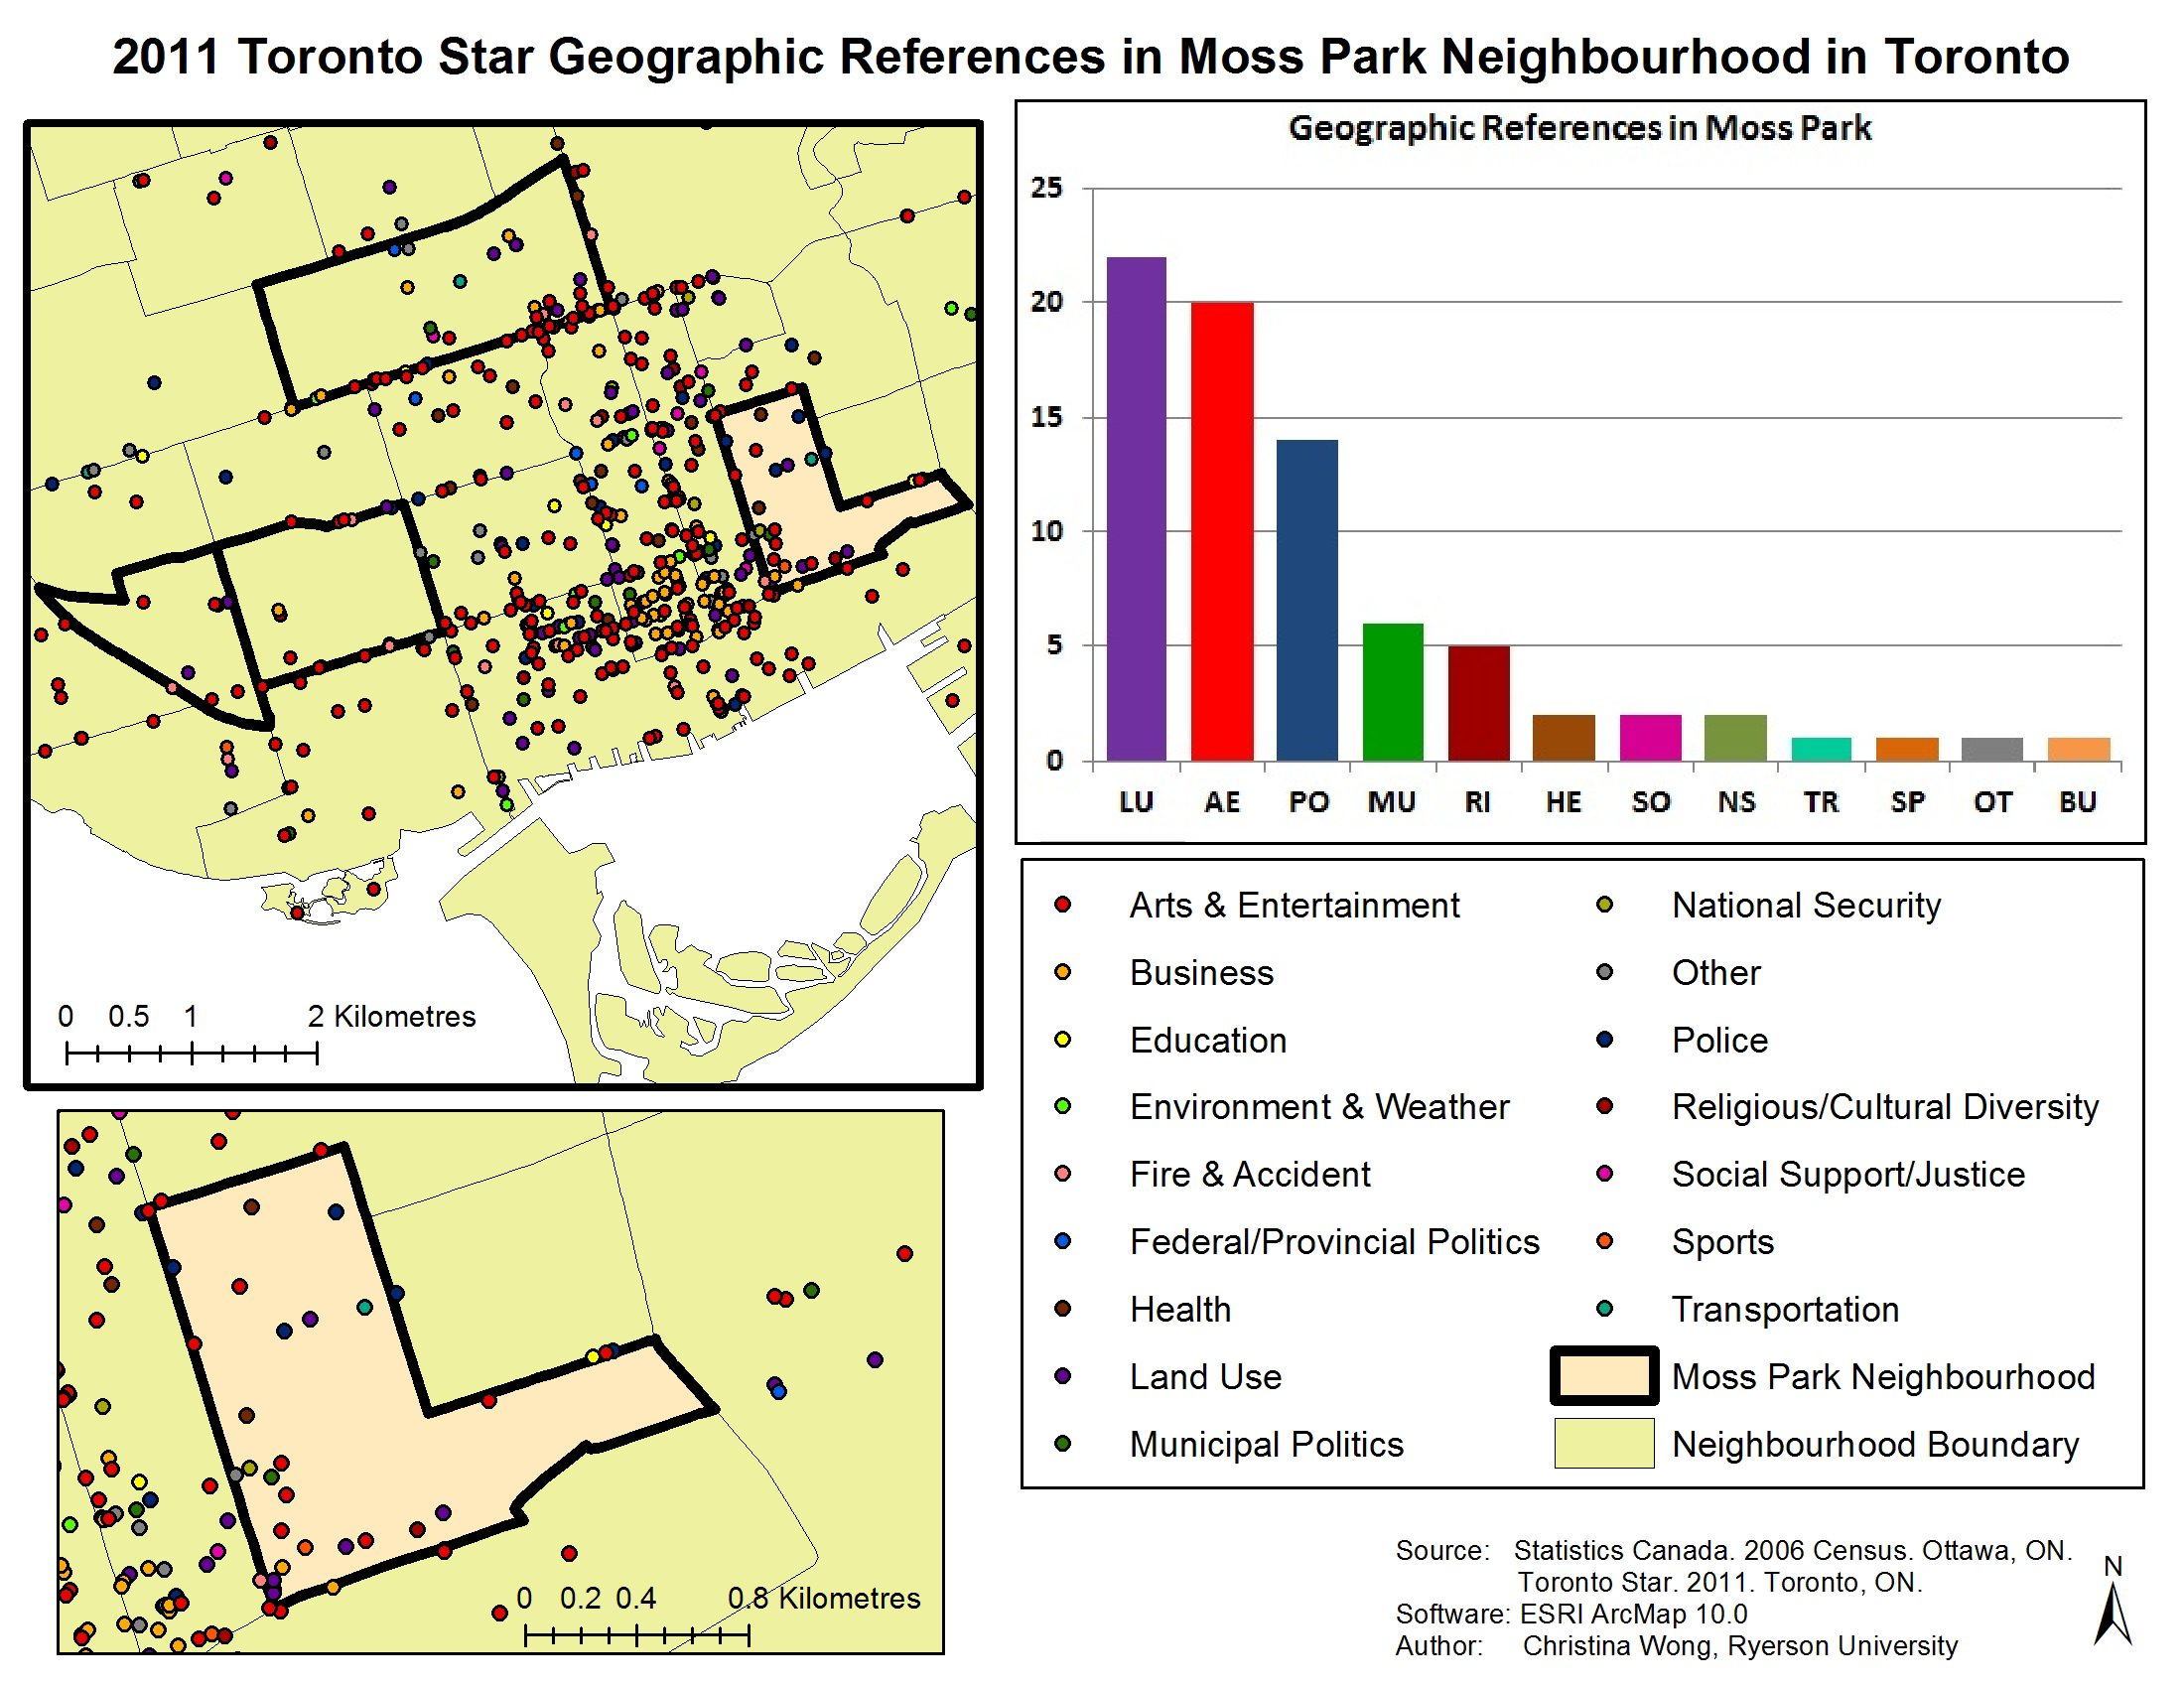 Figure 6. Toronto Star coverage of Moss Park